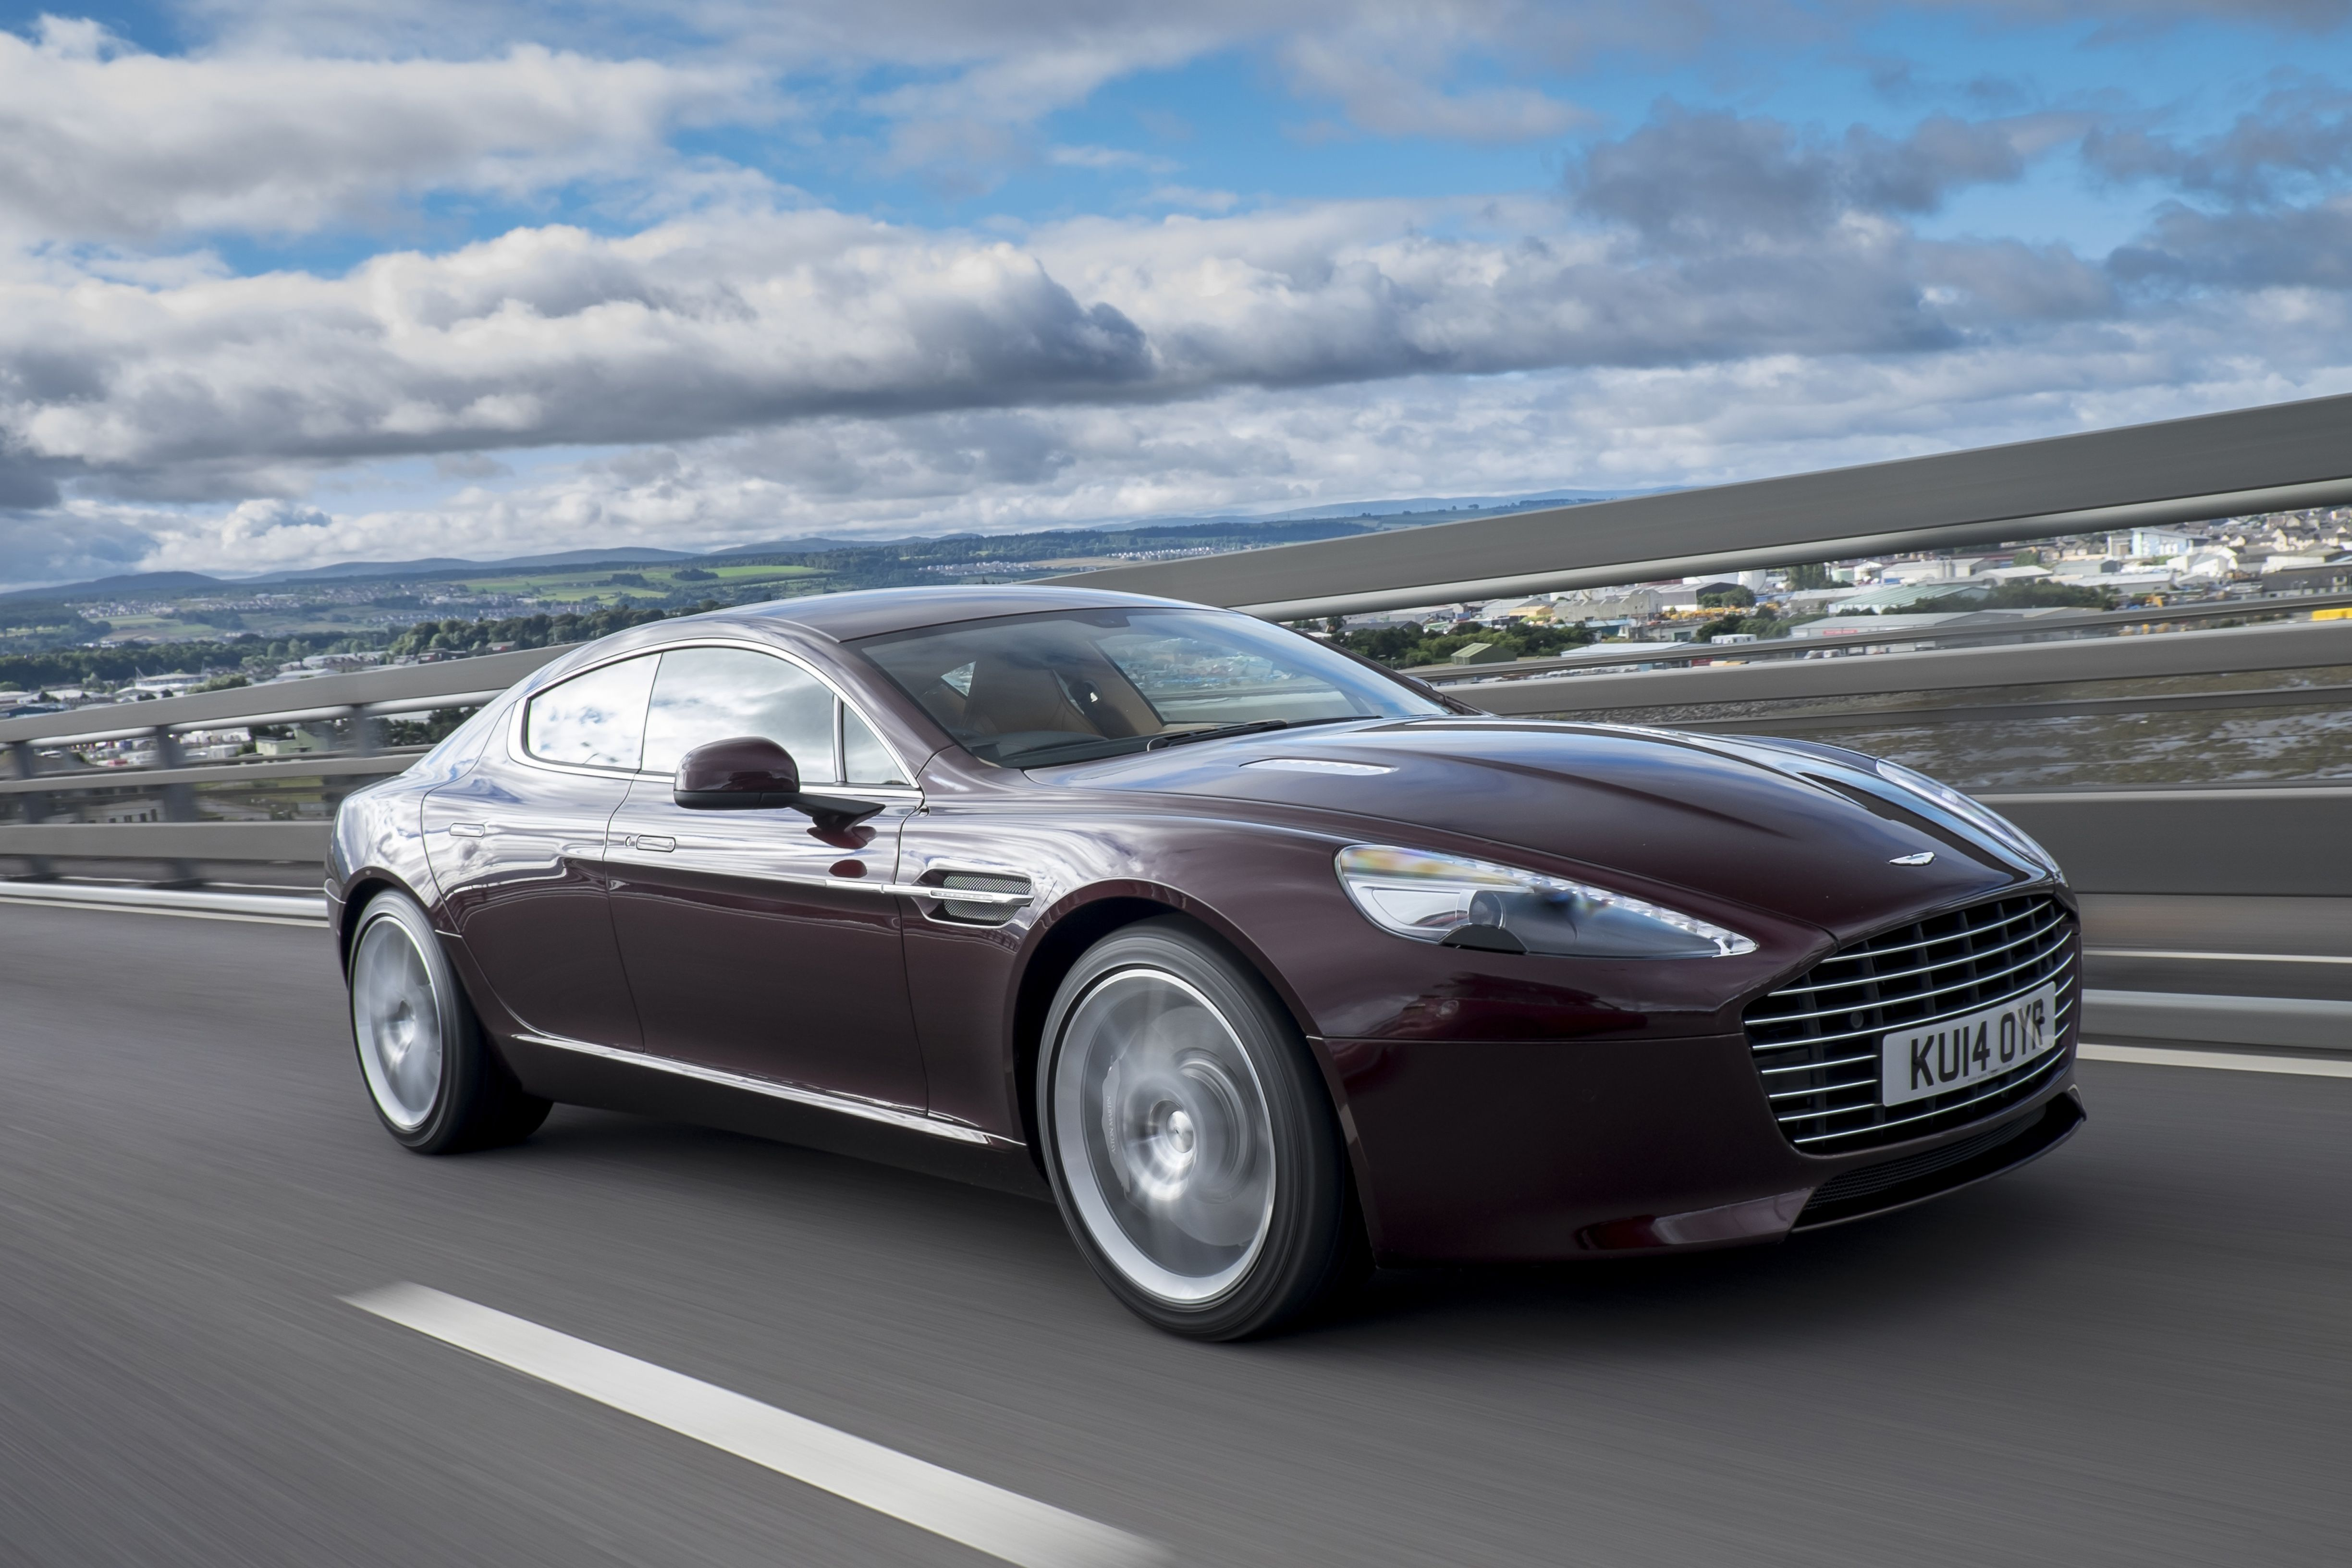 Aston Martin Rapide S The world s most beautiful 4 door sports car